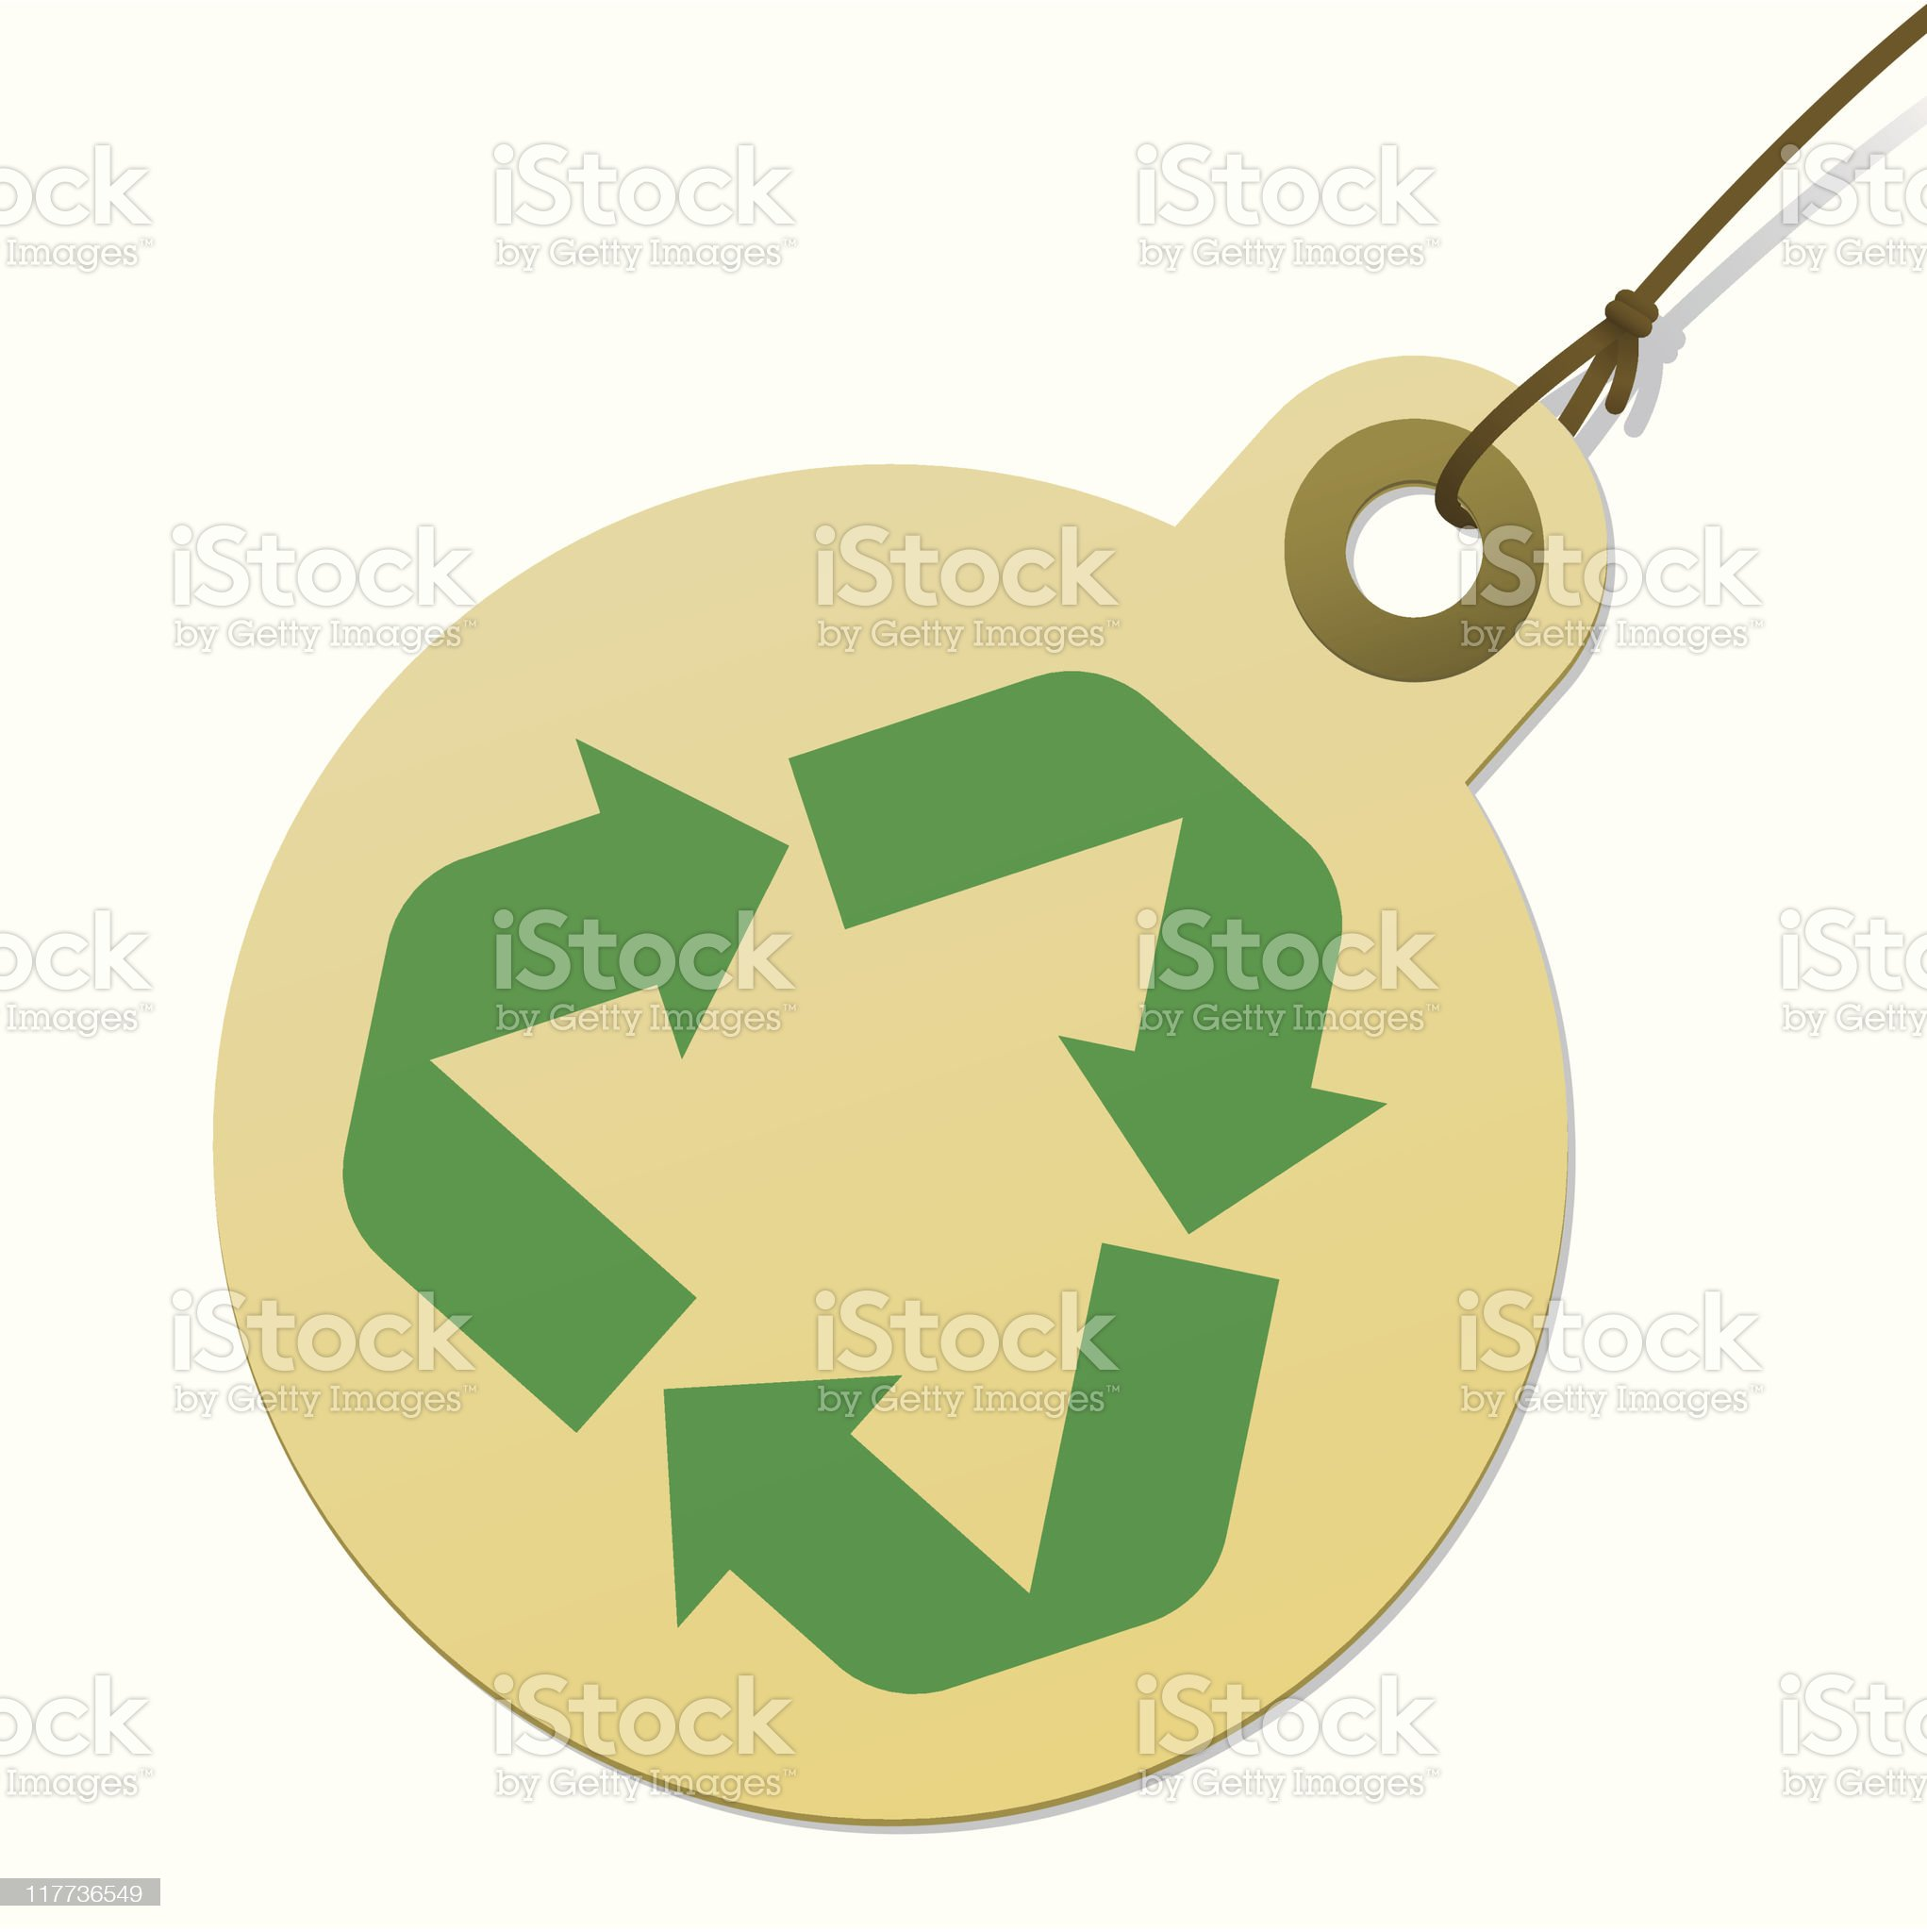 Round recycling tag with cord royalty-free stock vector art